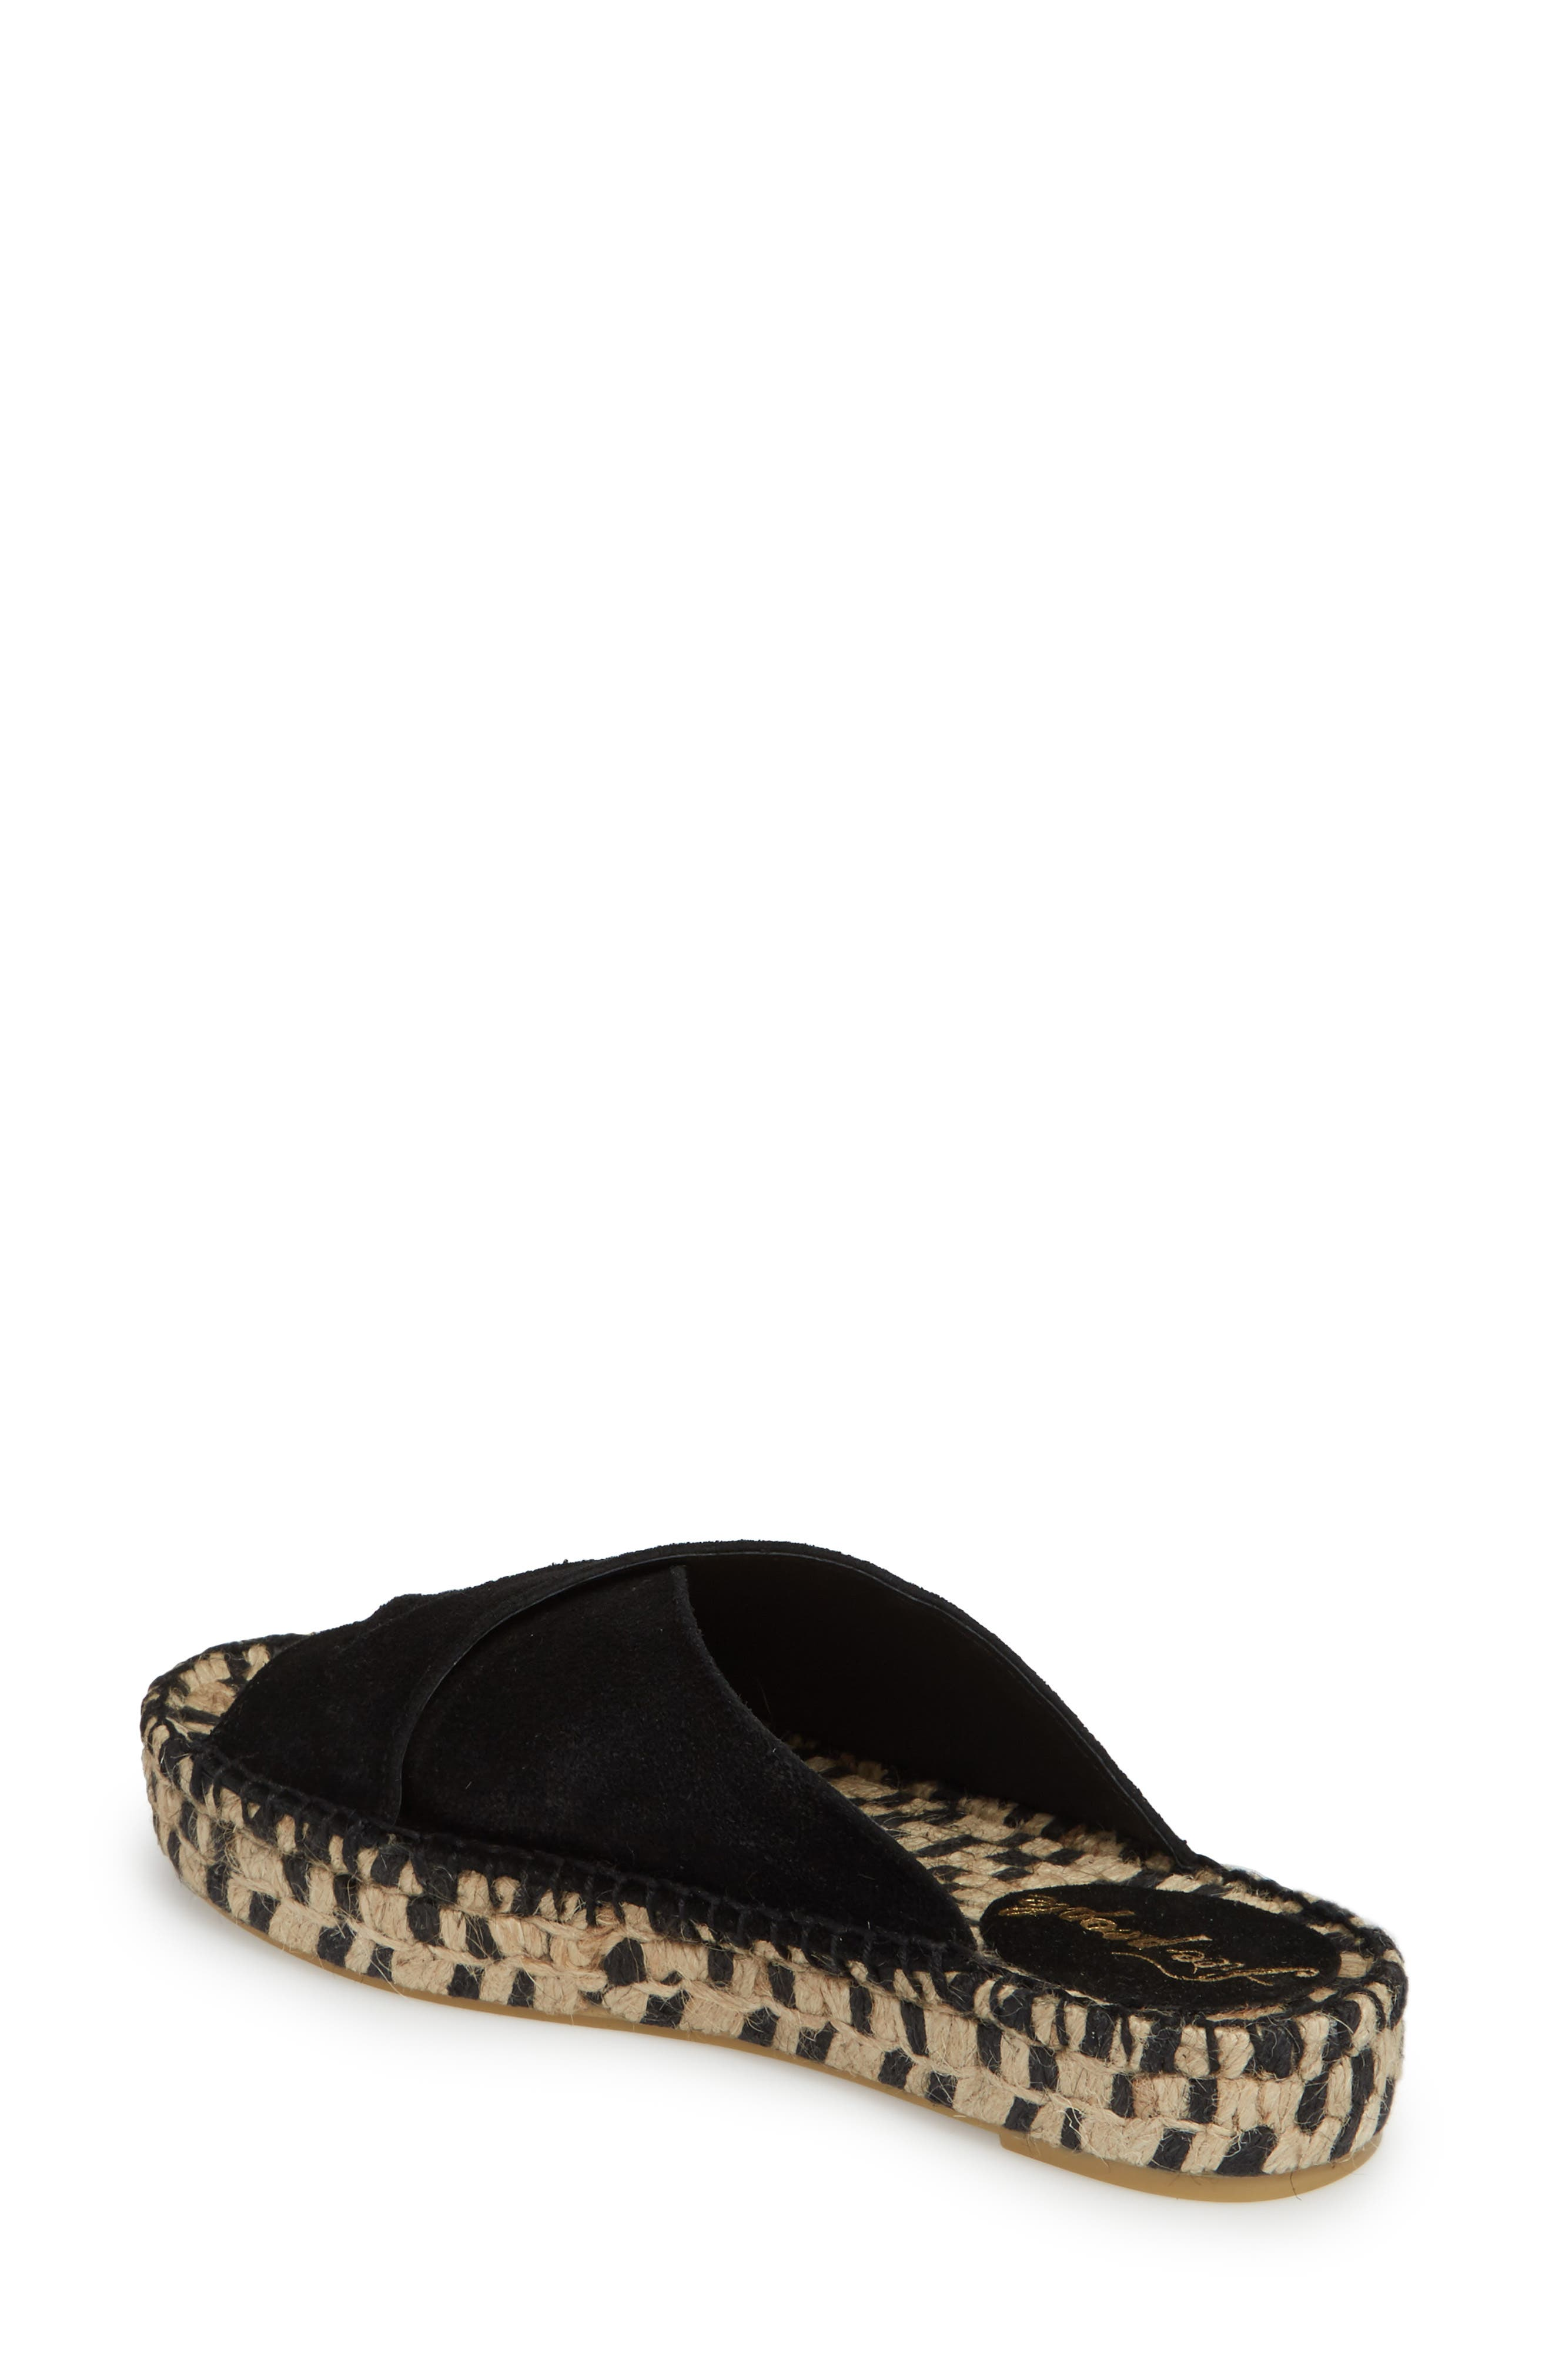 Tuscan Slip-On Espadrille Sandal,                             Alternate thumbnail 2, color,                             001